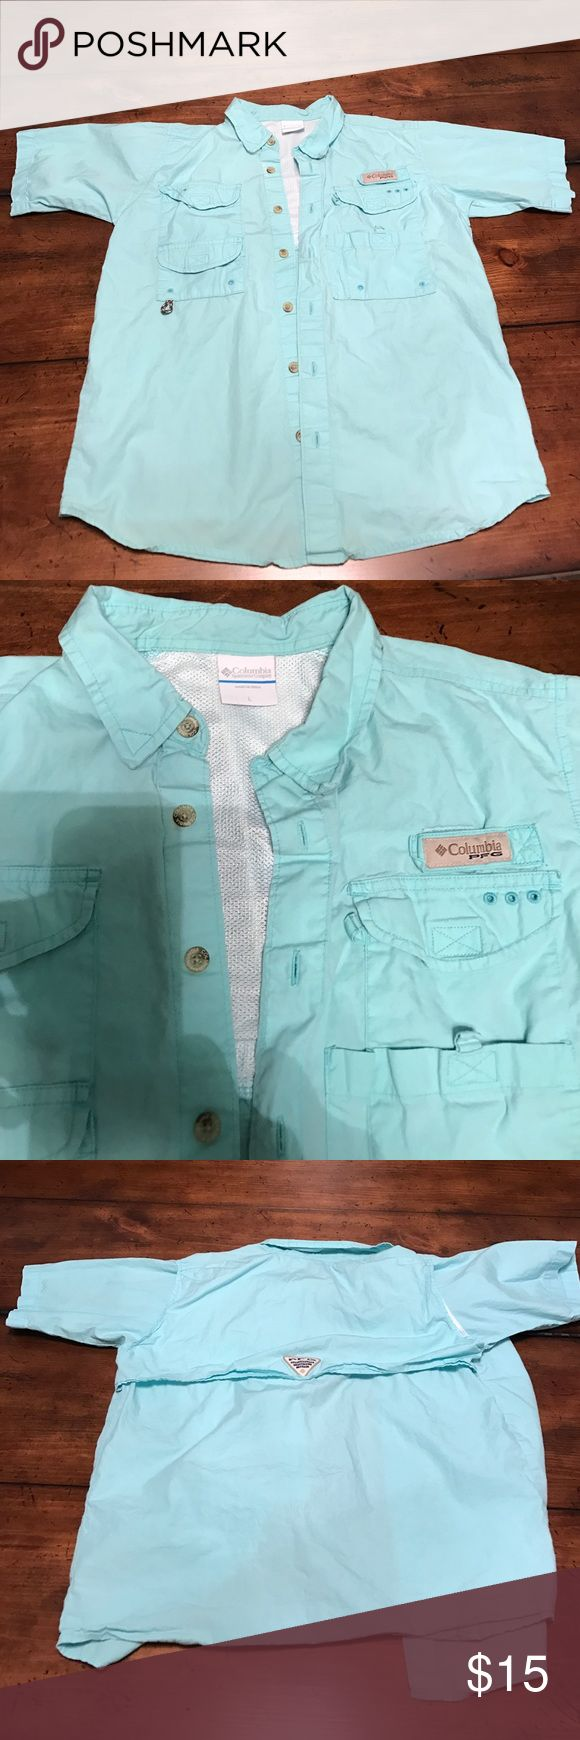 Boys large Columbia pfg shirt Boys large Columbia pfg shirt excellent condition all buttons and everything no rips or tears Columbia Shirts & Tops Button Down Shirts